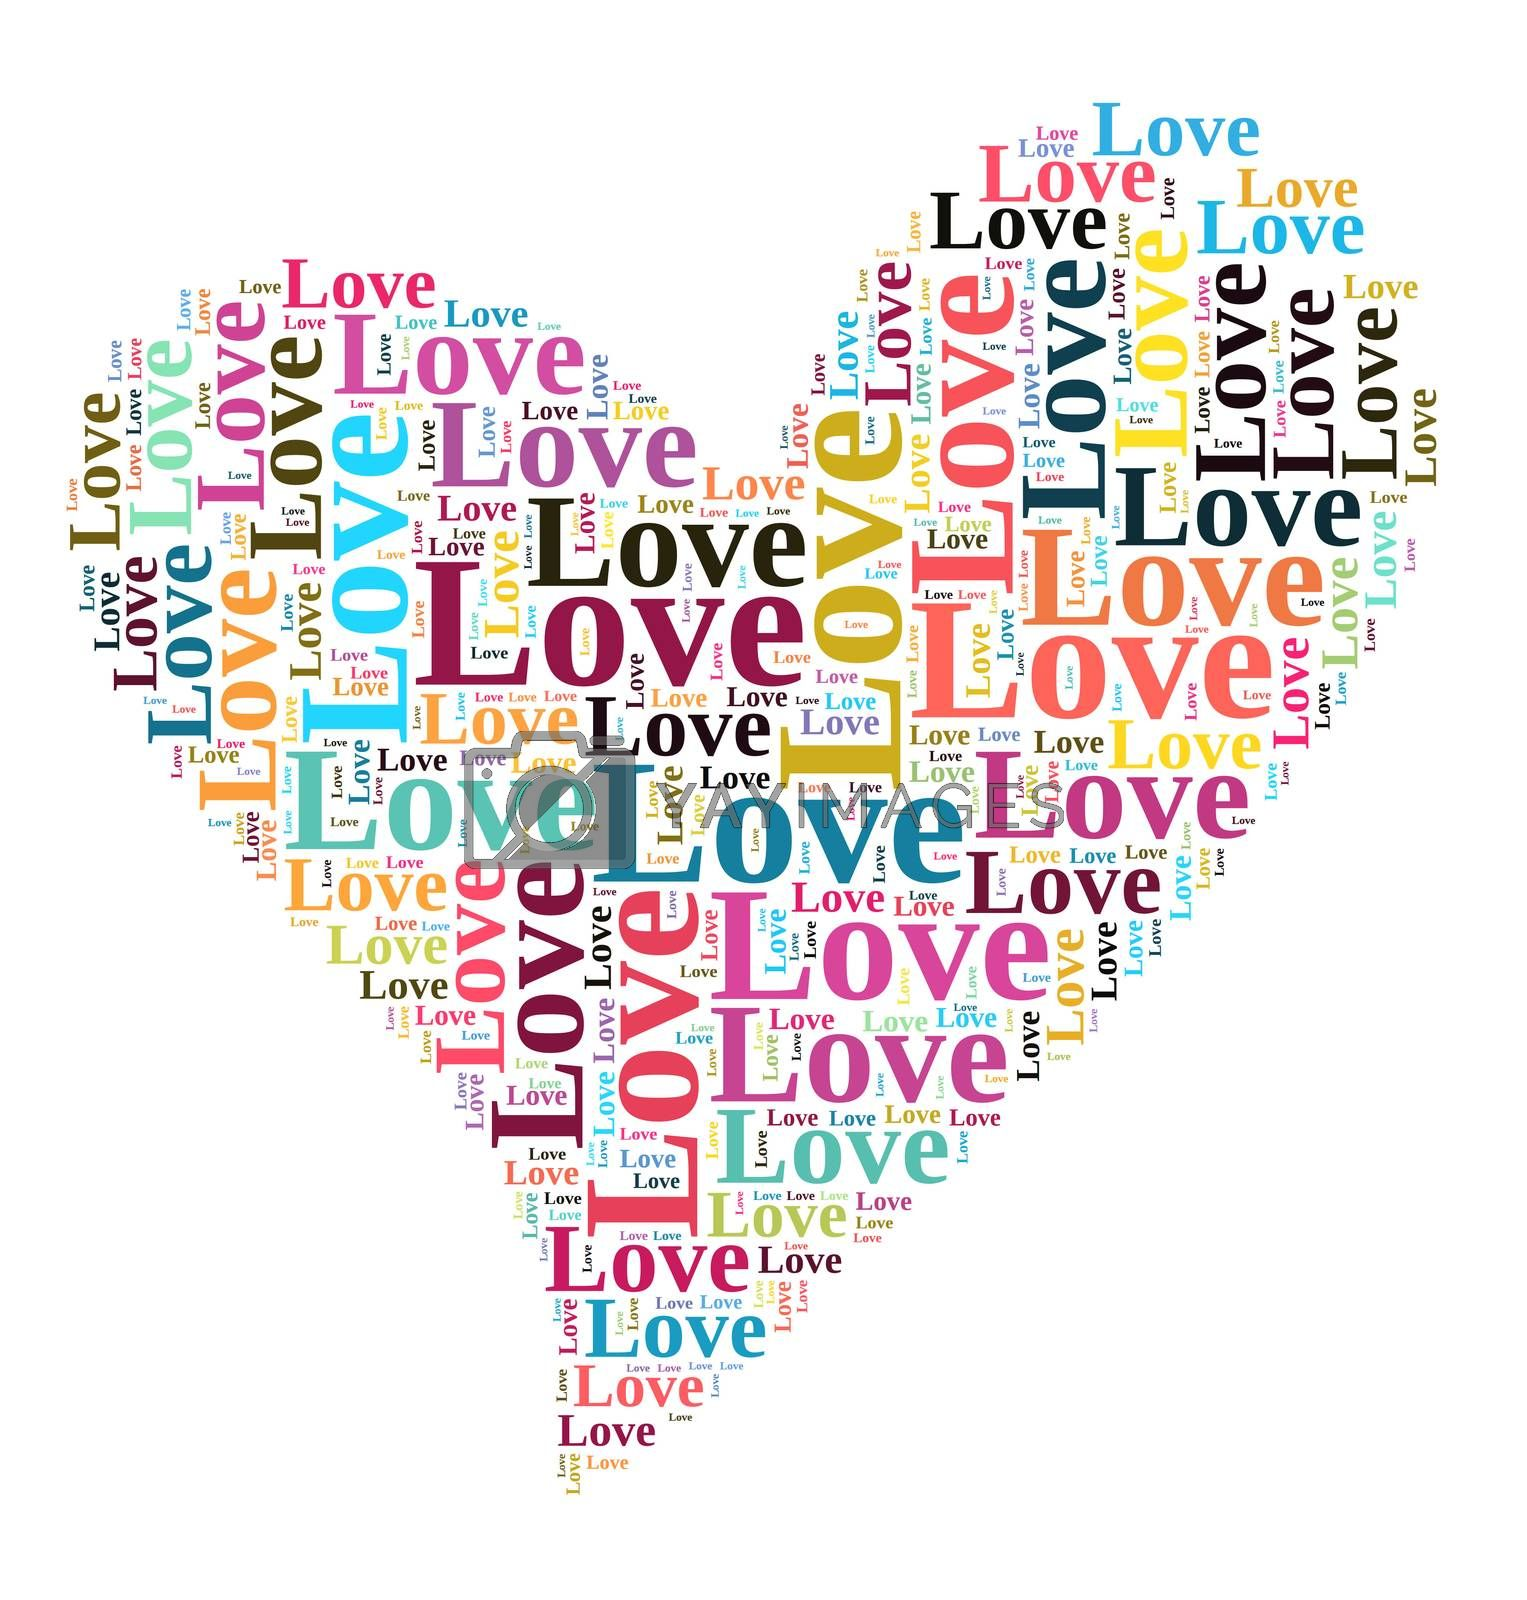 Valentines day card word cloud concept by eenevski